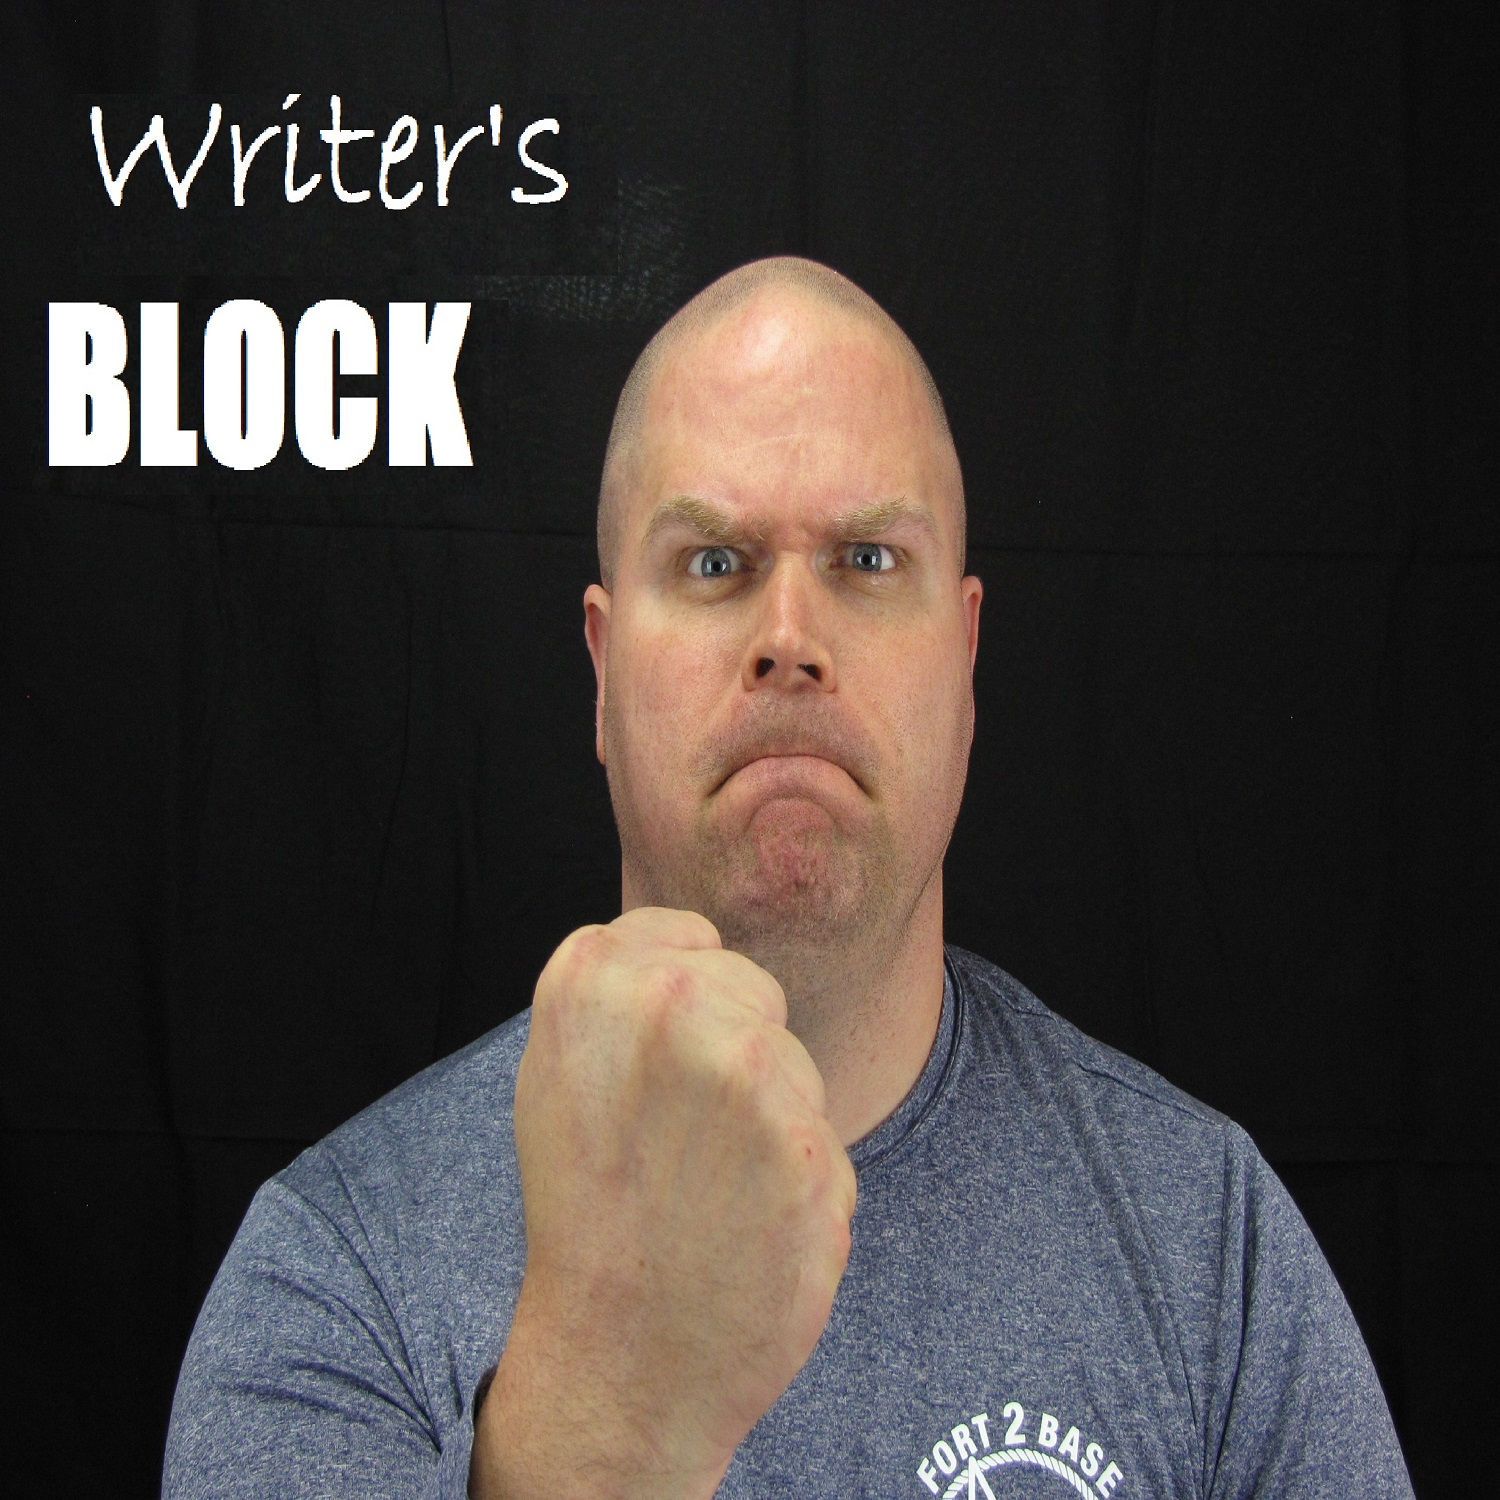 Writer's BLOCK by John Hamrick show art